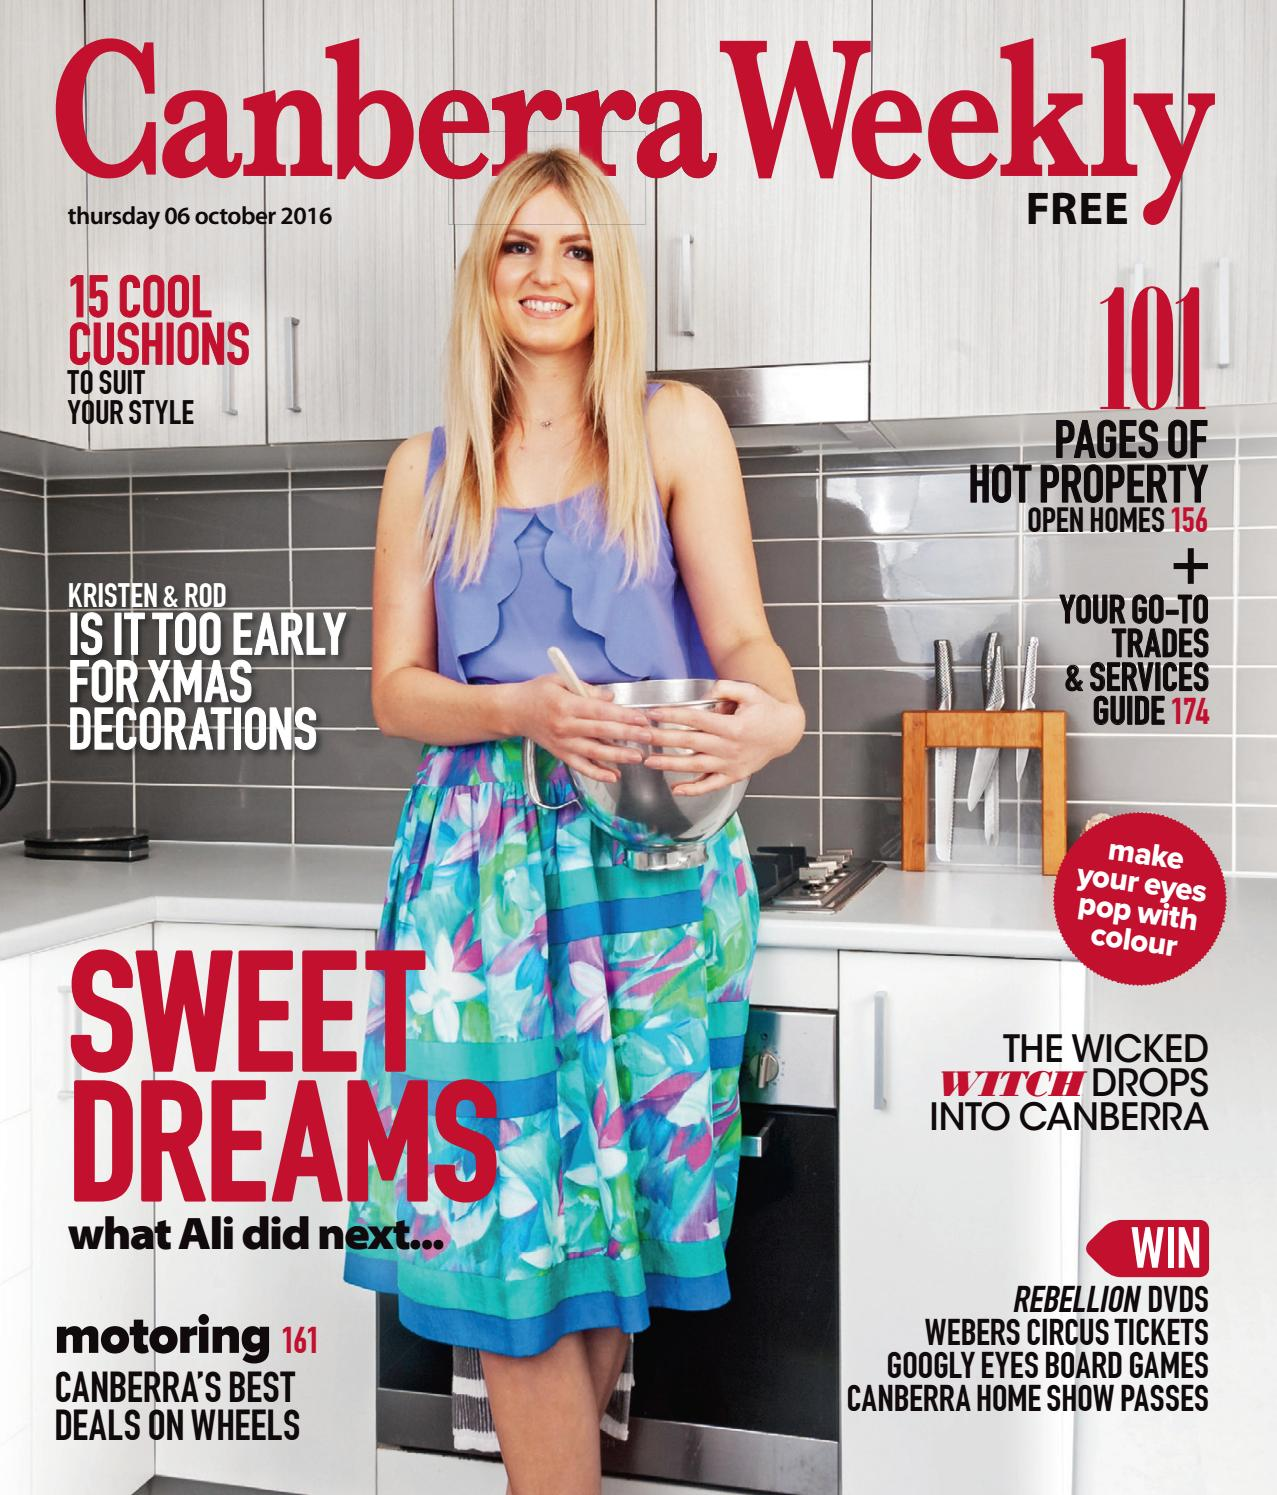 b2bf290c70 06 October 2016 by Canberra Weekly Magazine - issuu